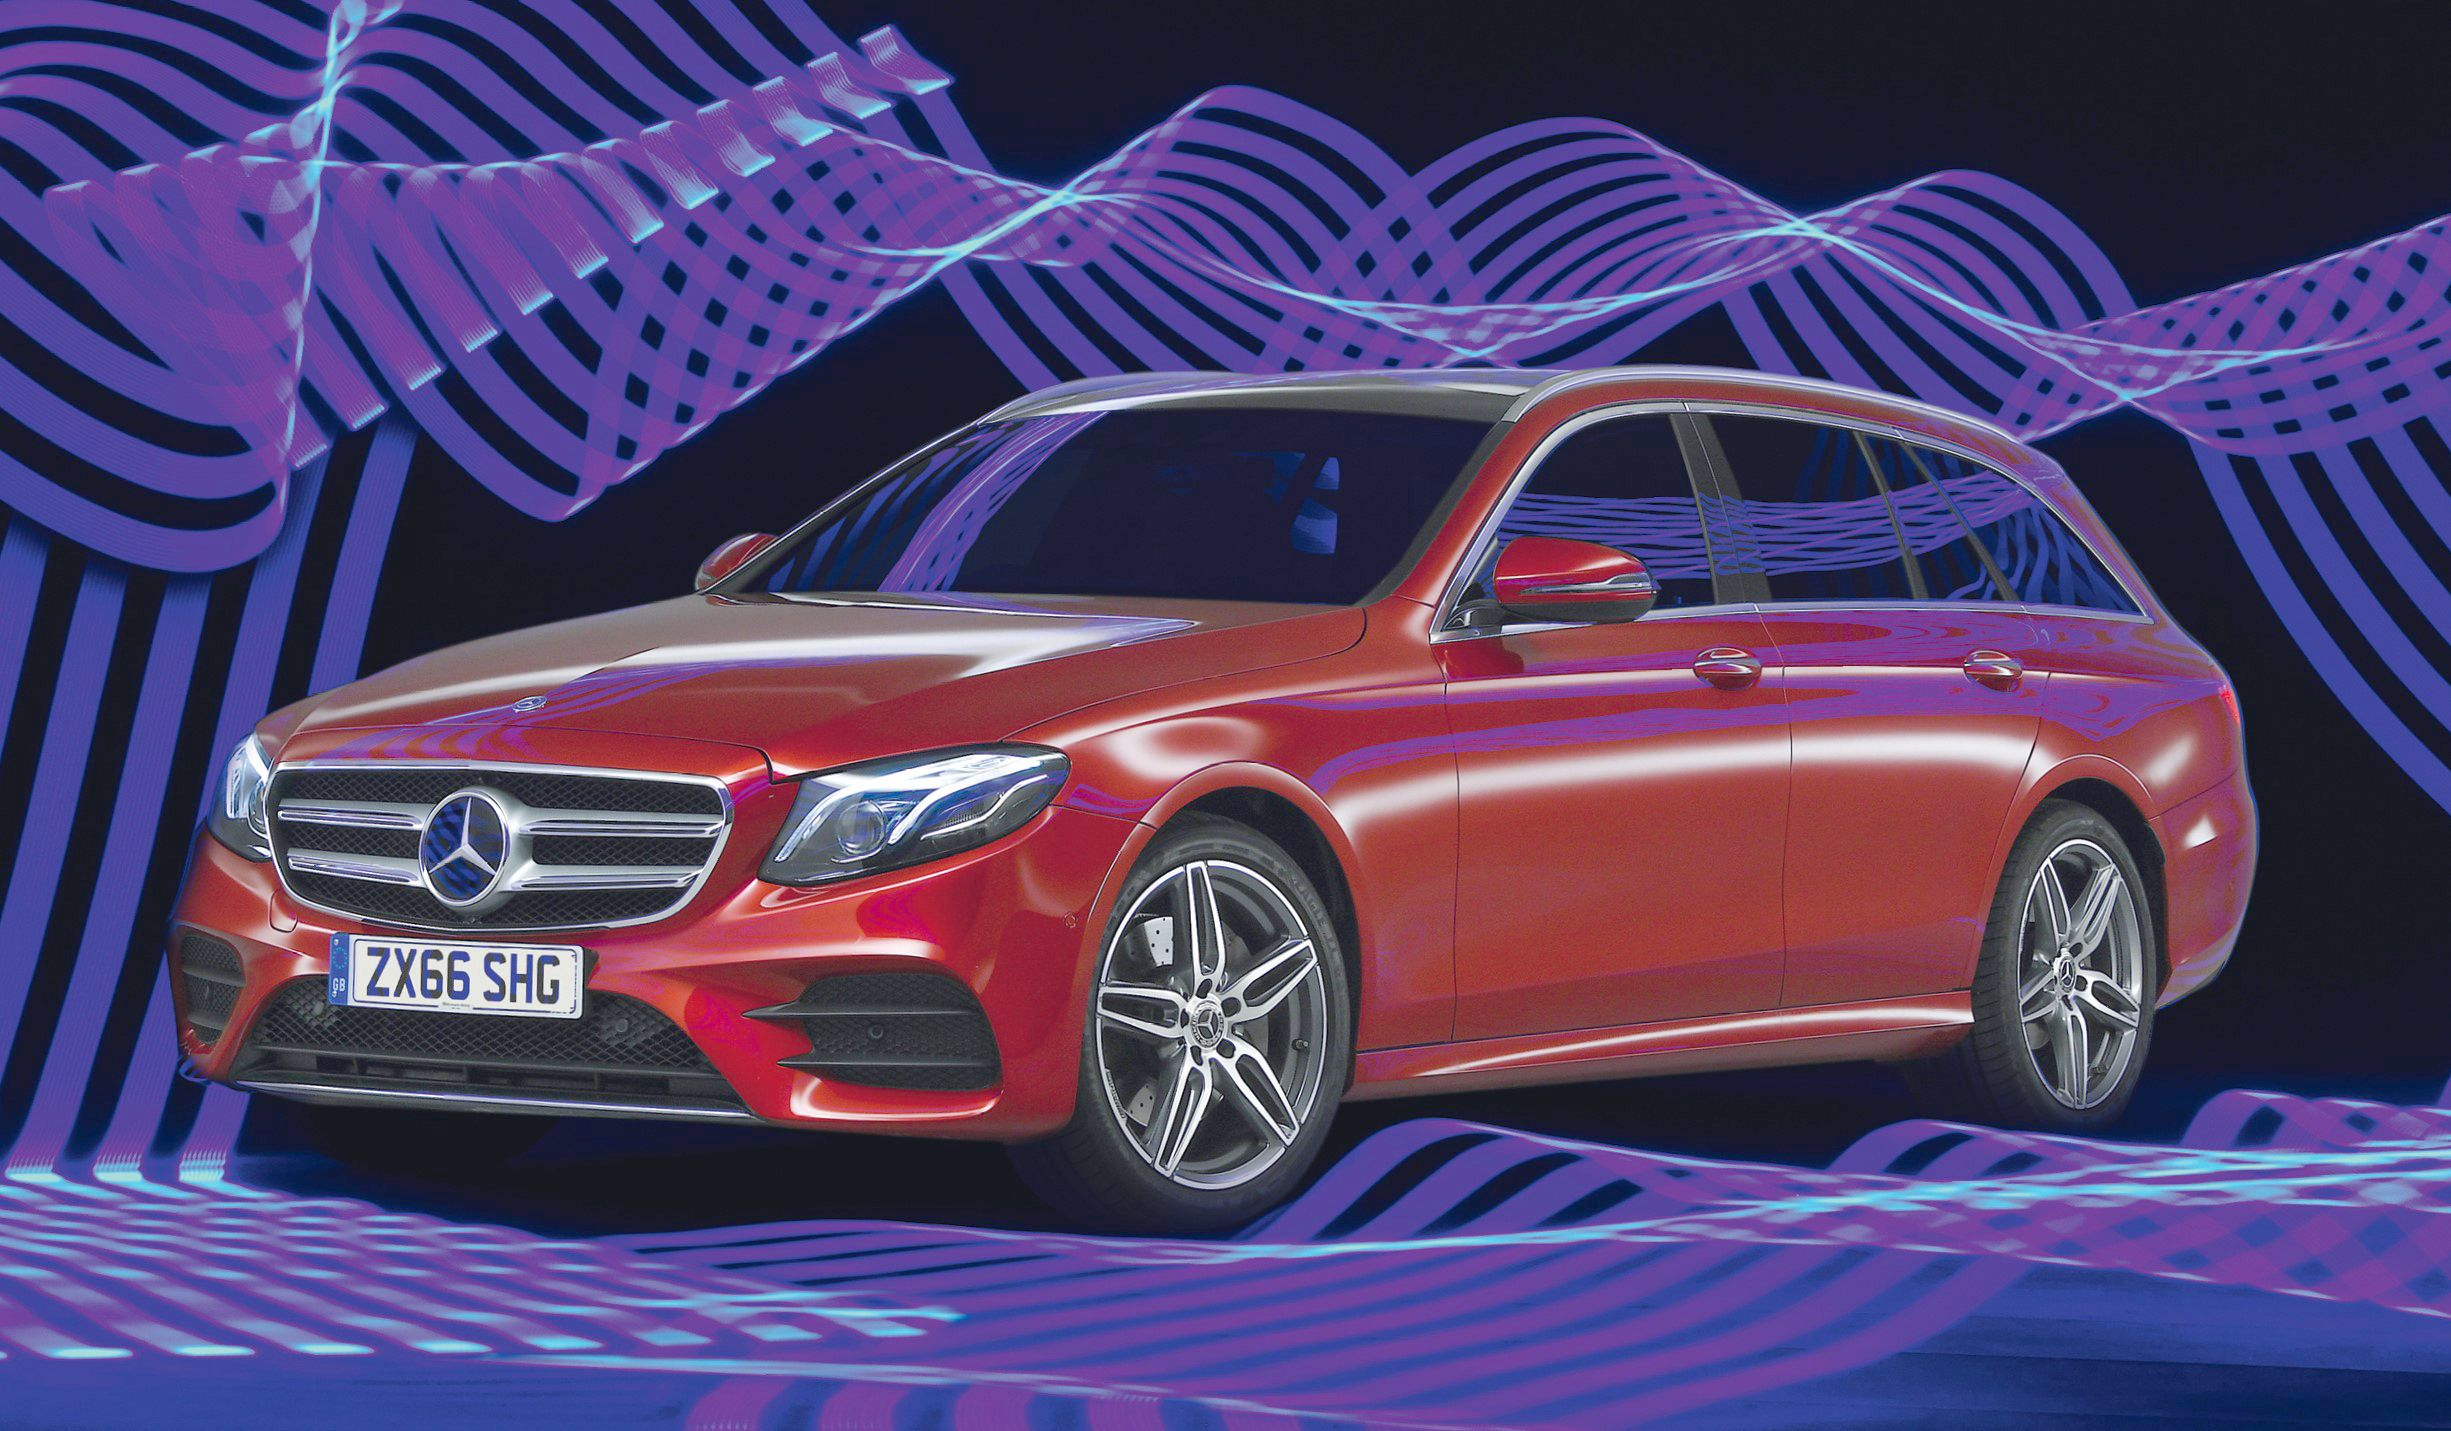 The new 2021 Mercedes model is comprehensively equipped, efficient, frugal and a stylish piece of automotive excellence